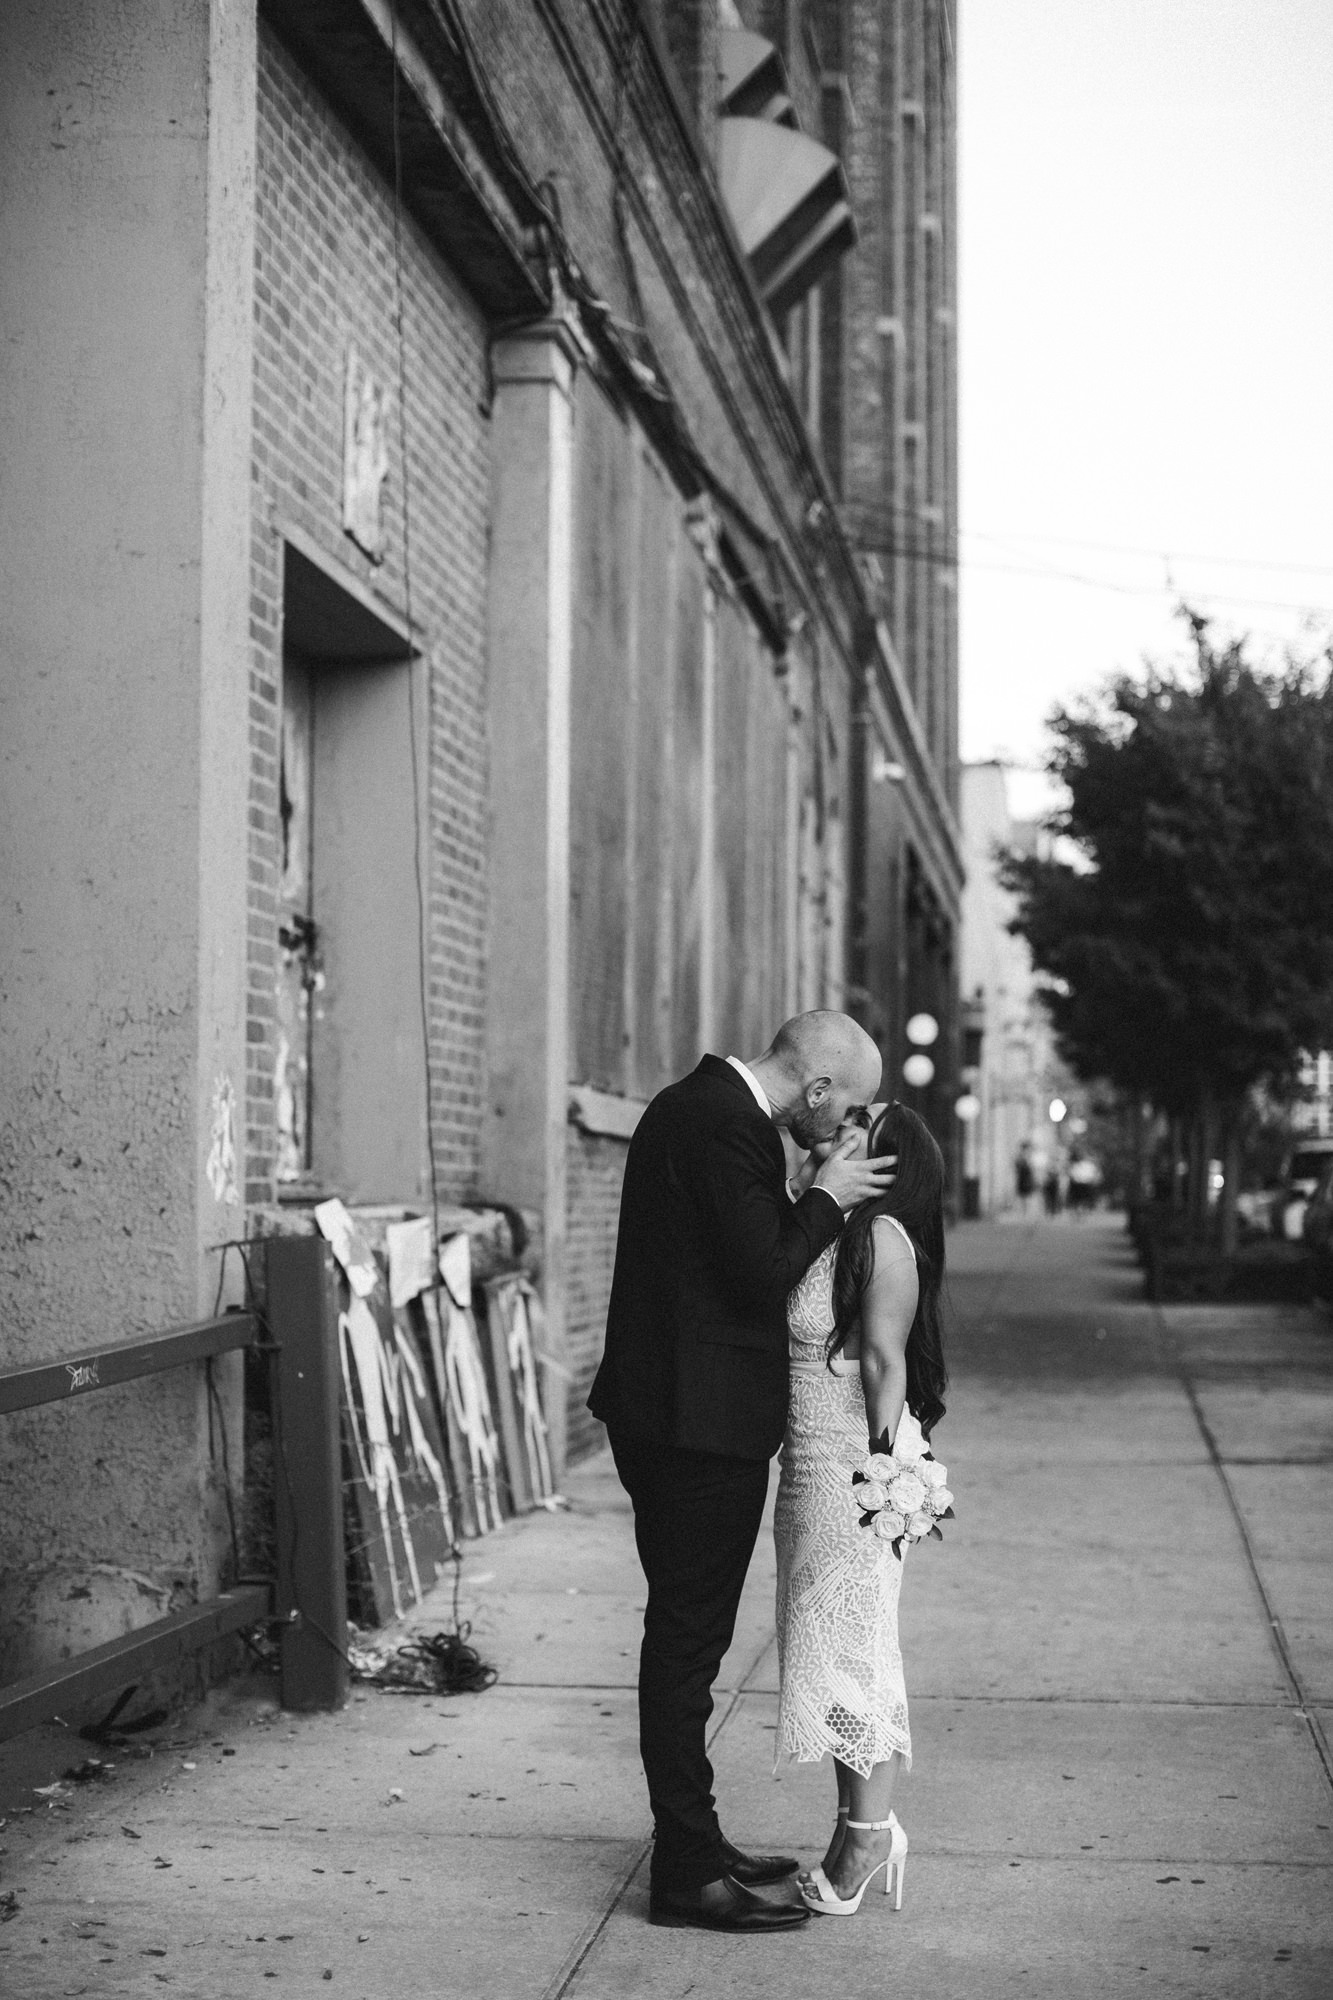 NYC_ELOPEMENT_CITYHALL_BROOKLYN_SAMMBLAKE_0048.jpg